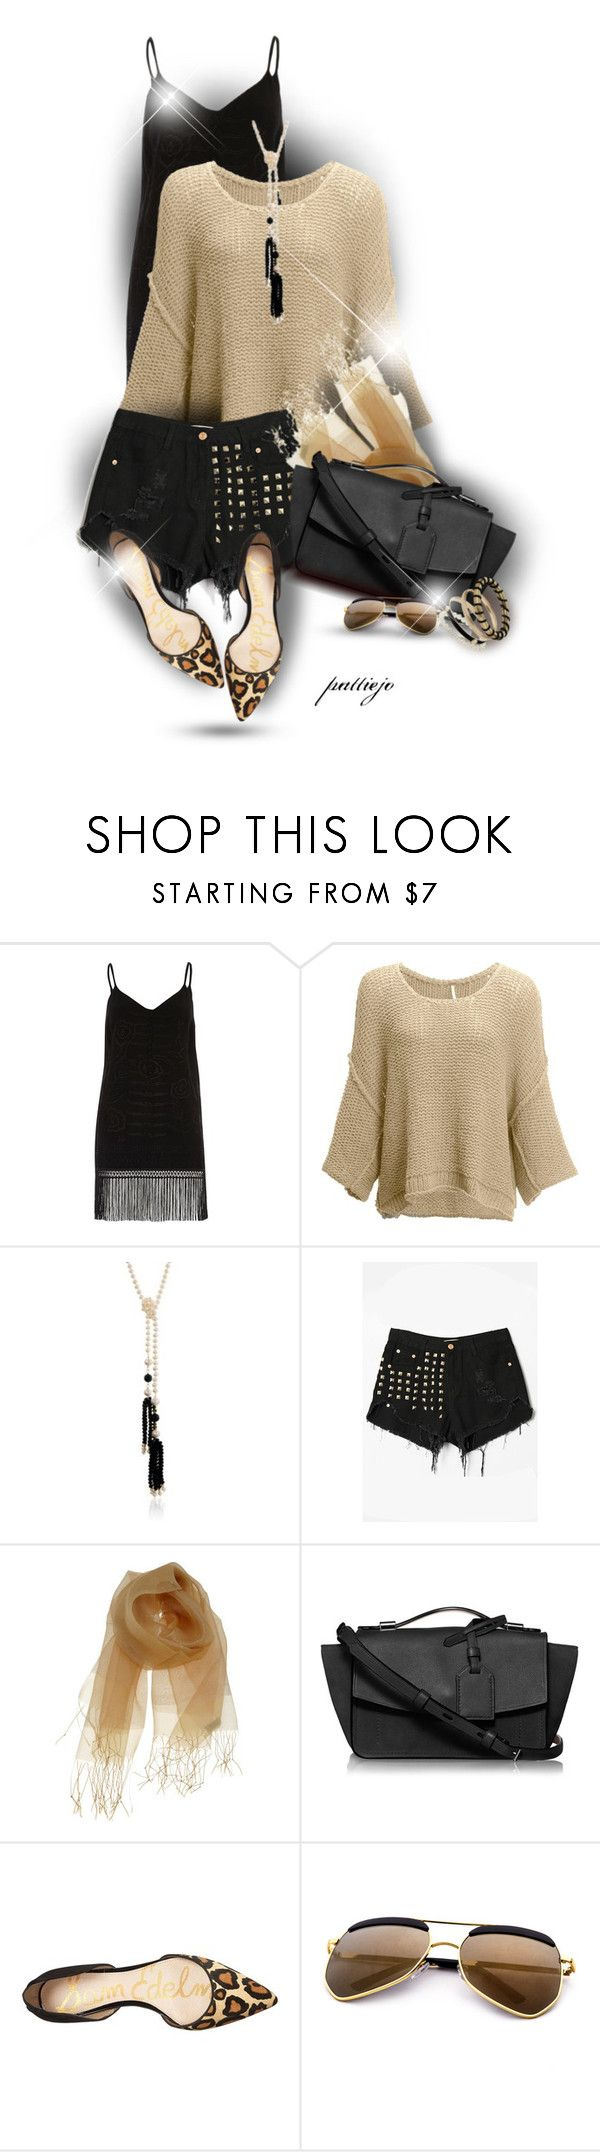 """""""Double Take"""" by rockreborn ❤ liked on Polyvore featuring River Island, Free People, Ross-Simons, WithChic, Gregory Ladner, Reed Krakoff, Sam Edelman and Miss Selfridge"""